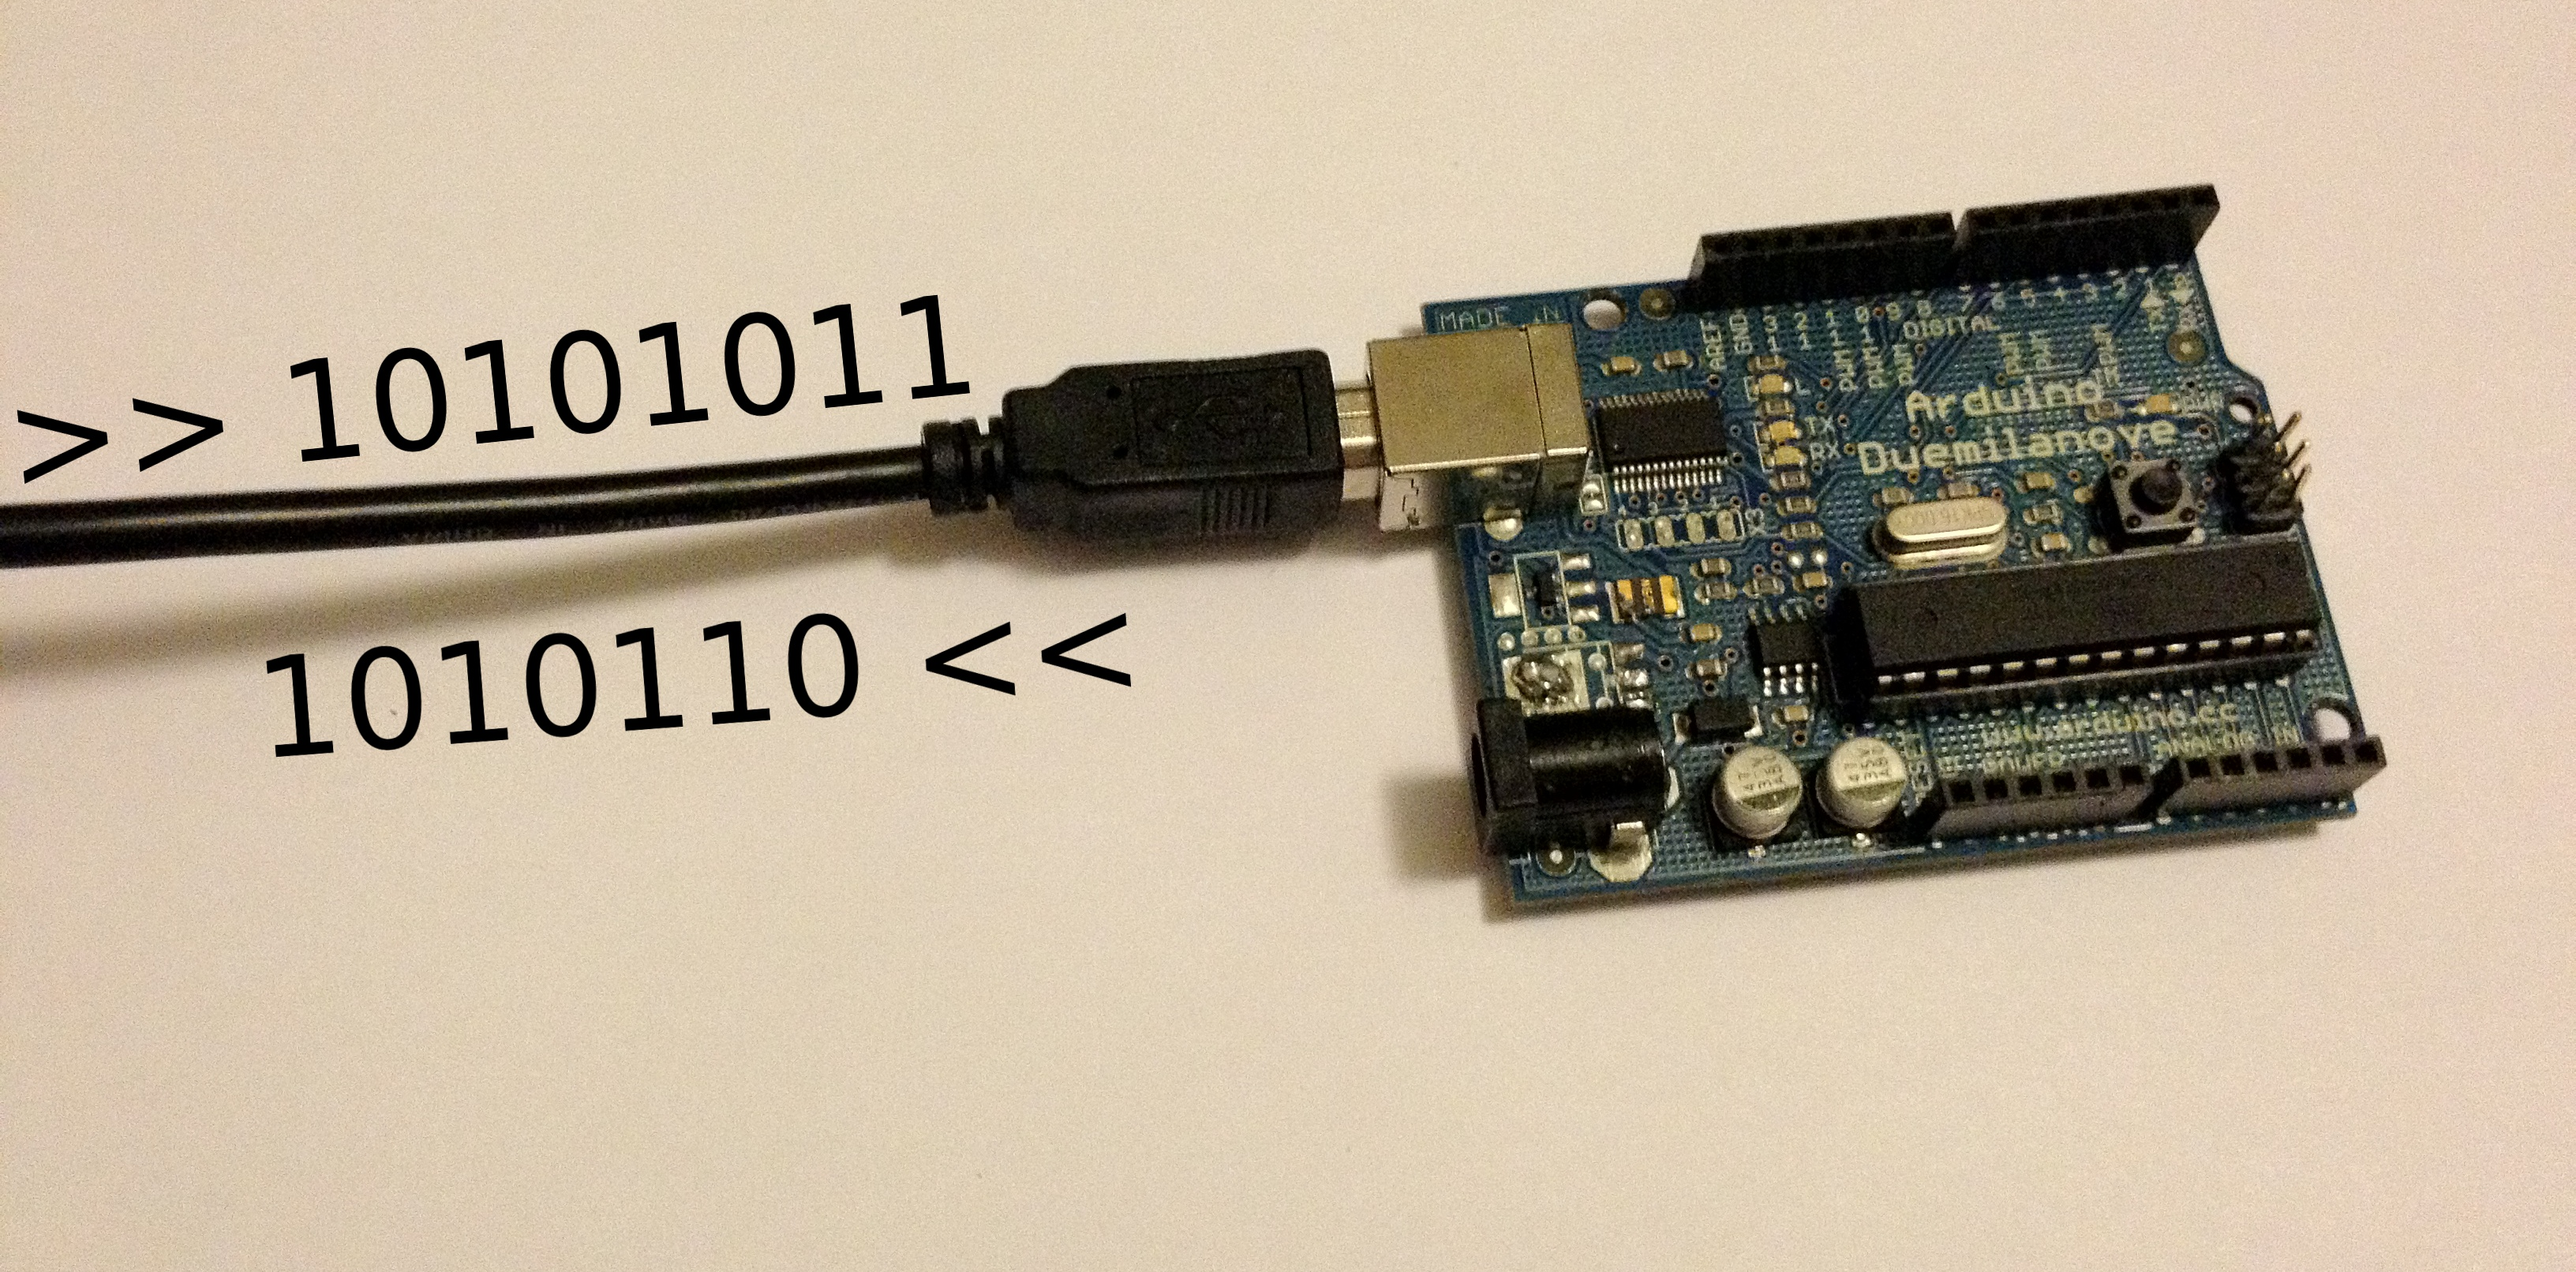 Graphing values in Arduino, the EASY way!